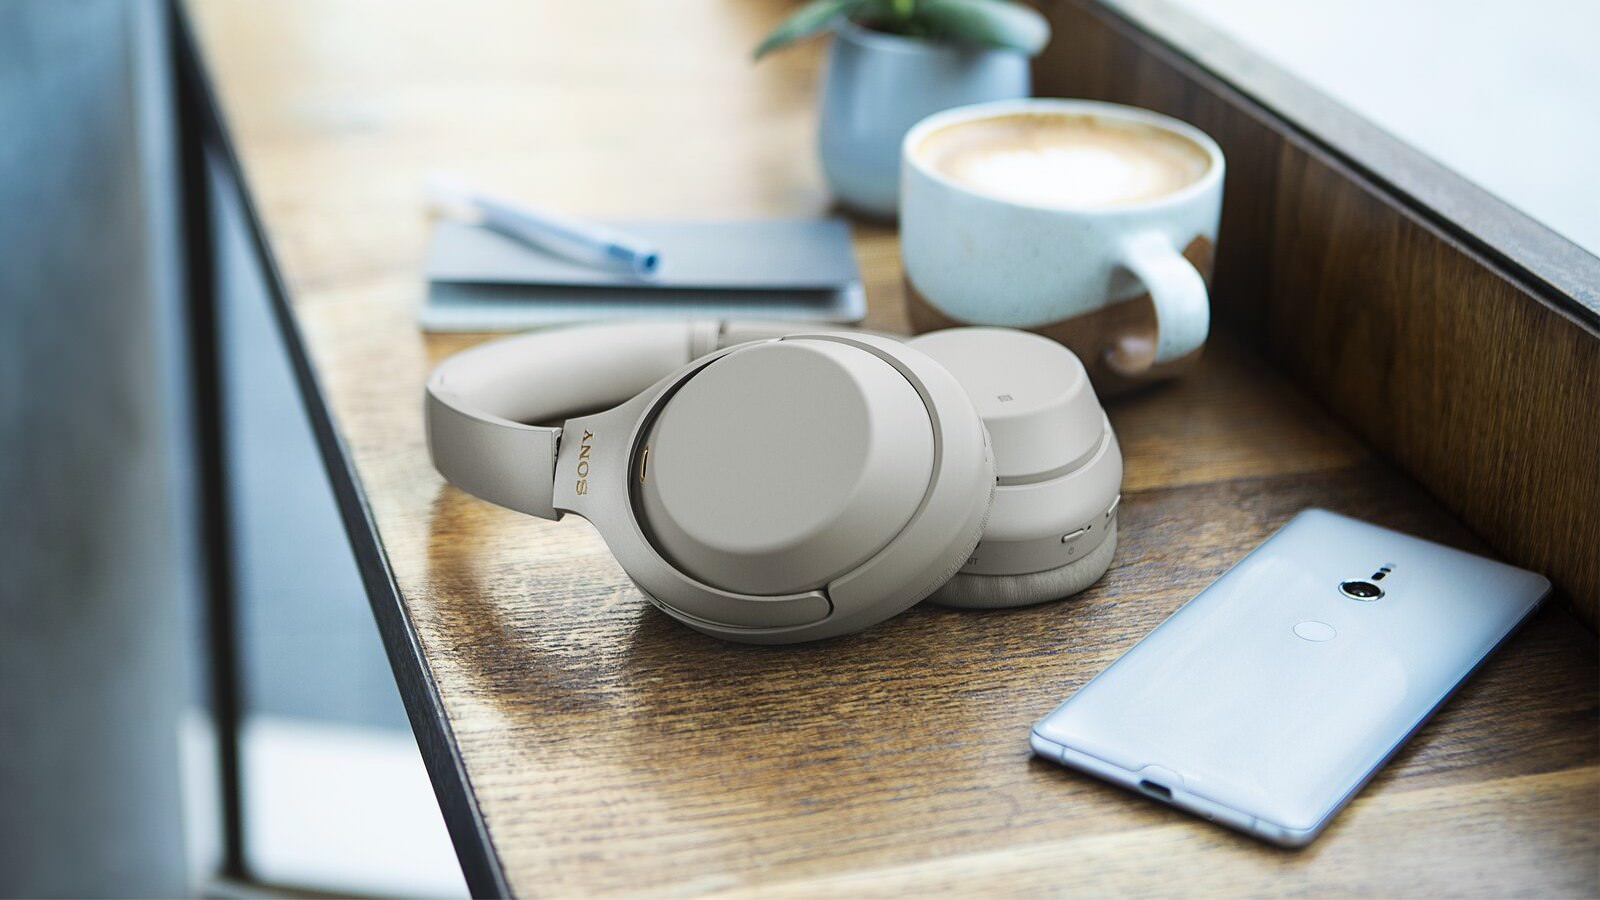 Sony Sony WH-1000XM3 Wireless Noise Cancelling Headphones in Silver